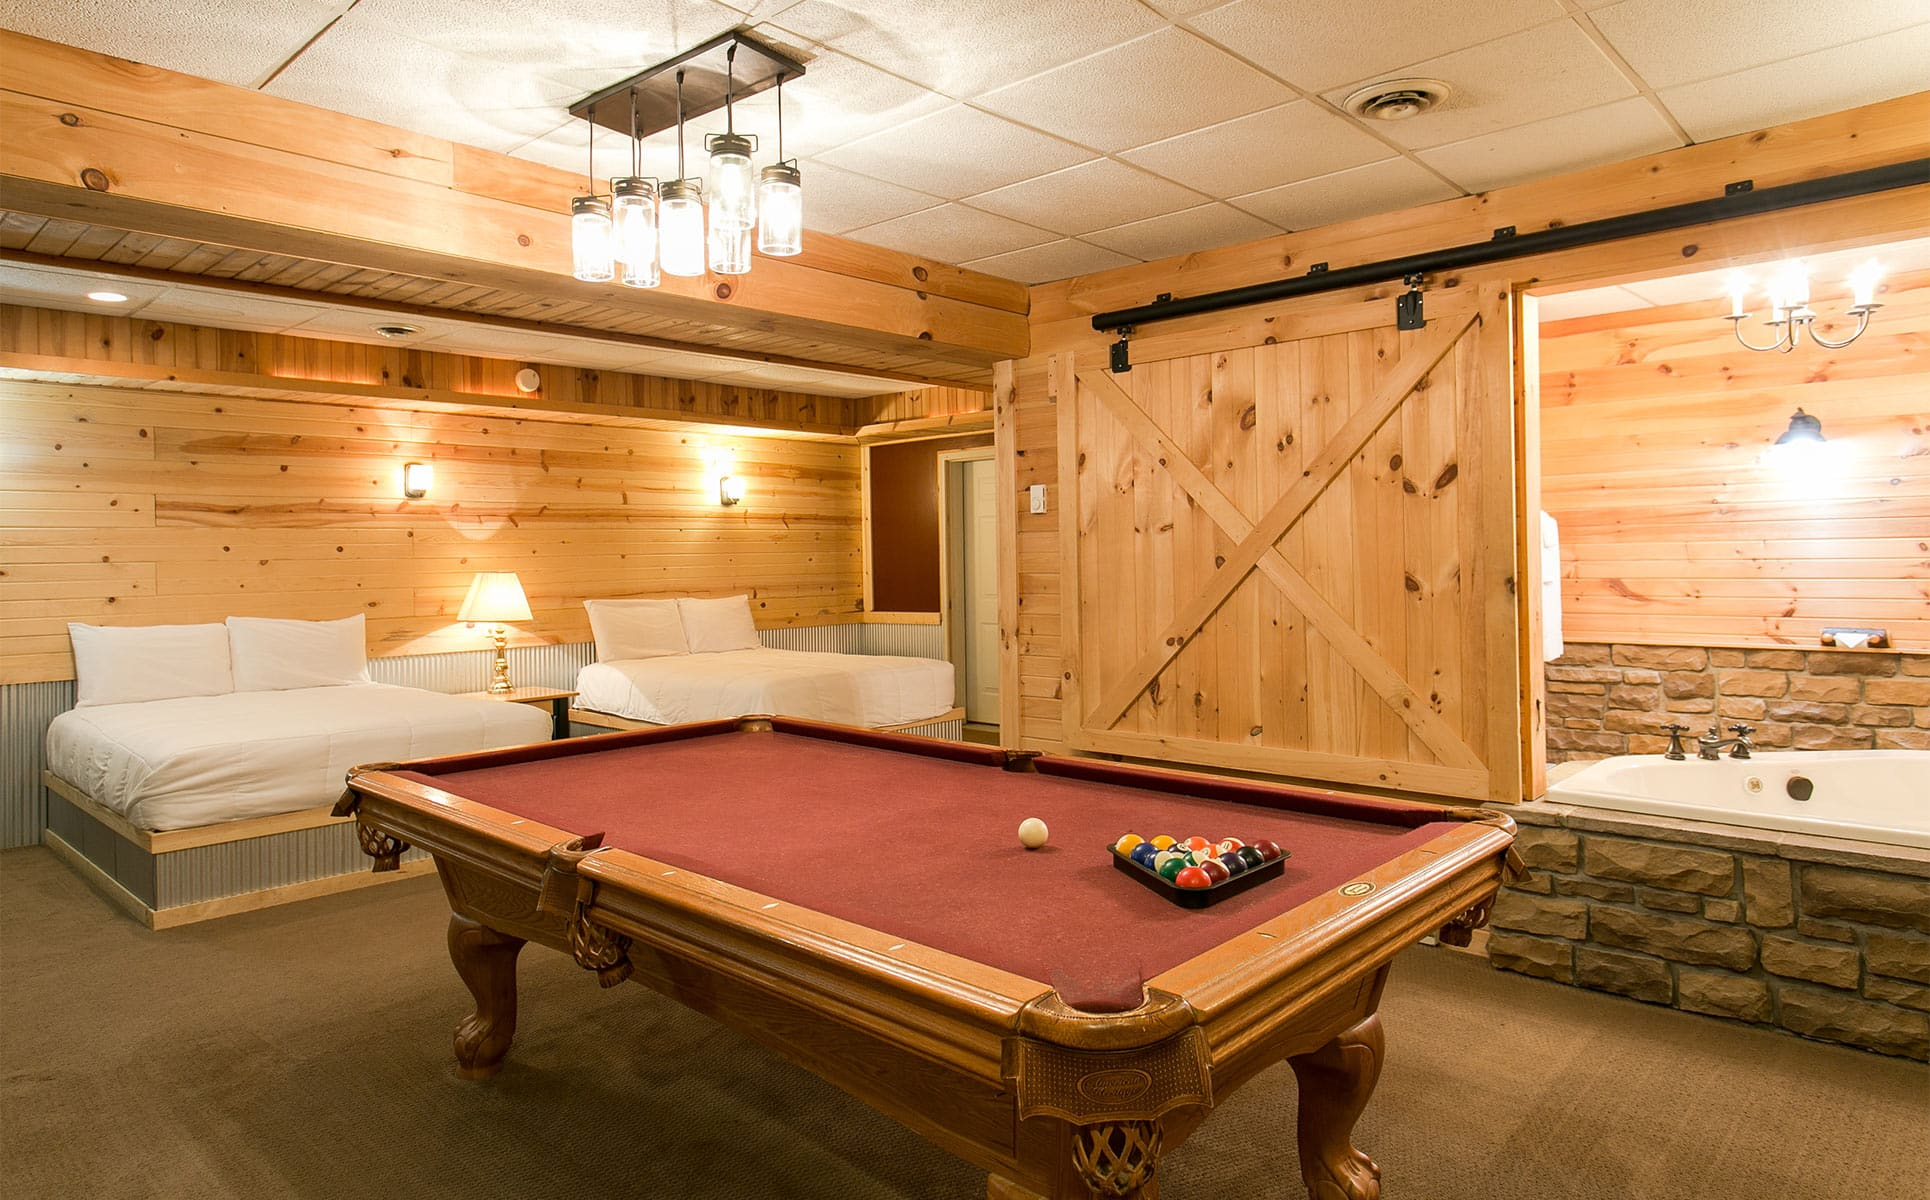 Pool Table with beds in basement